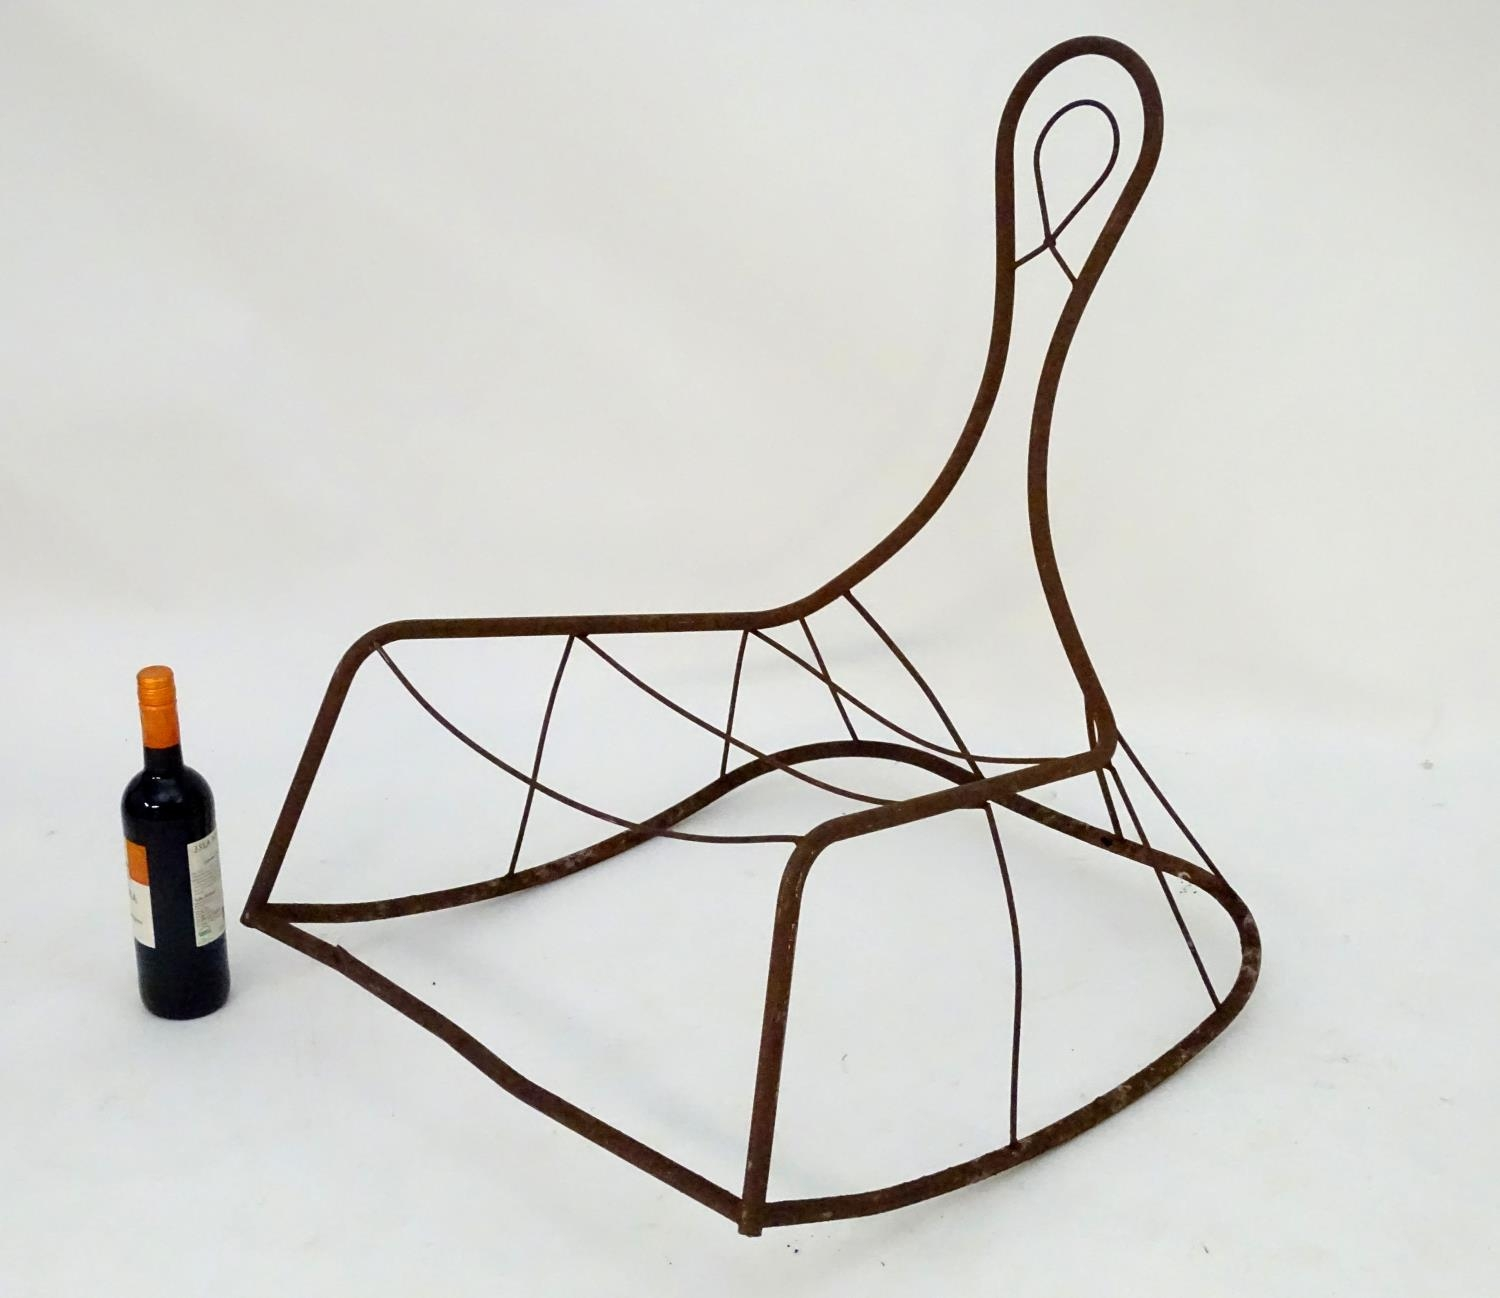 Garden & Architectural, Salvage: a mid-20thC metal rocking chair frame, suitable for use as a - Image 6 of 6